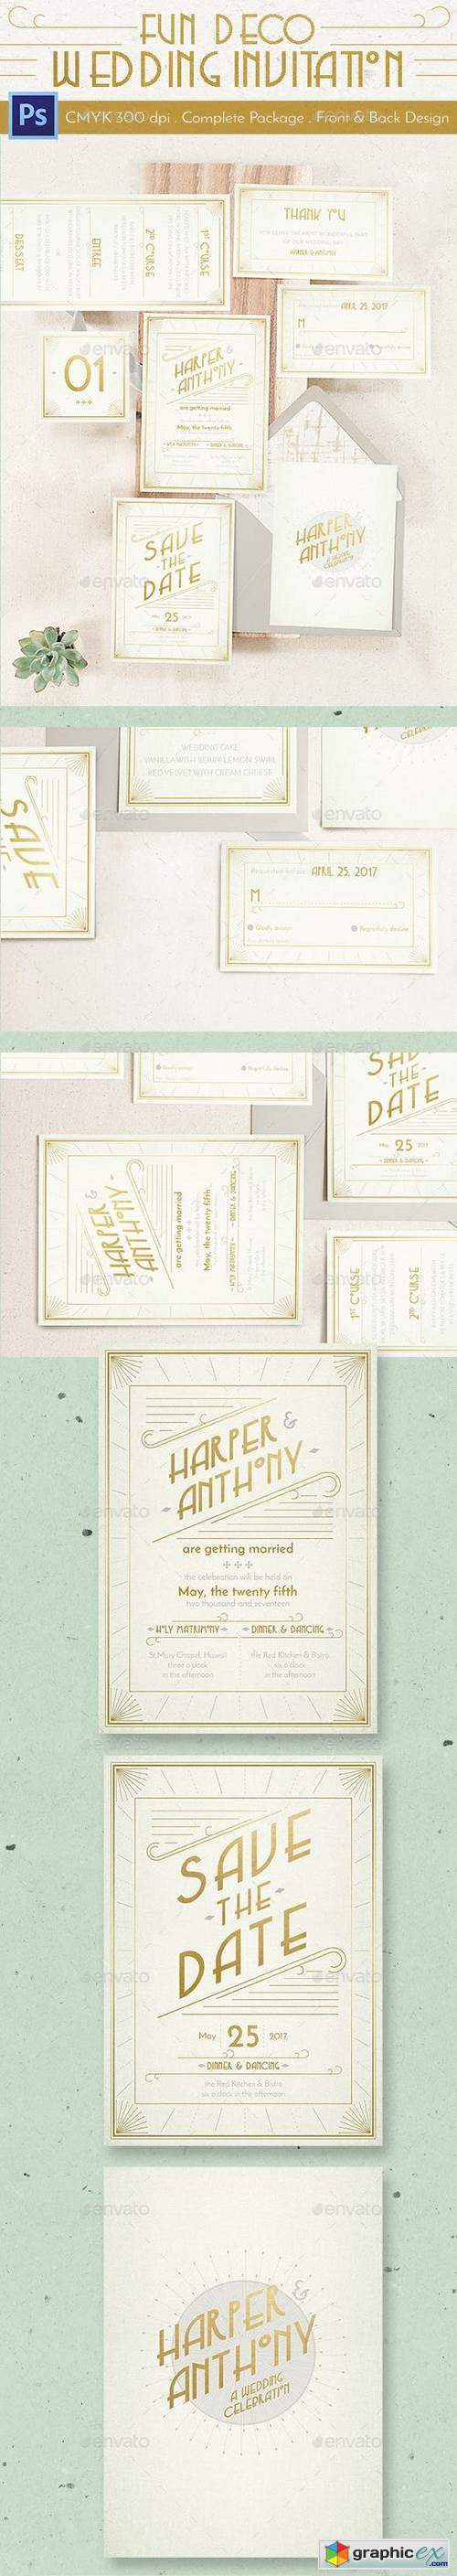 Fun Deco Wedding Invitation